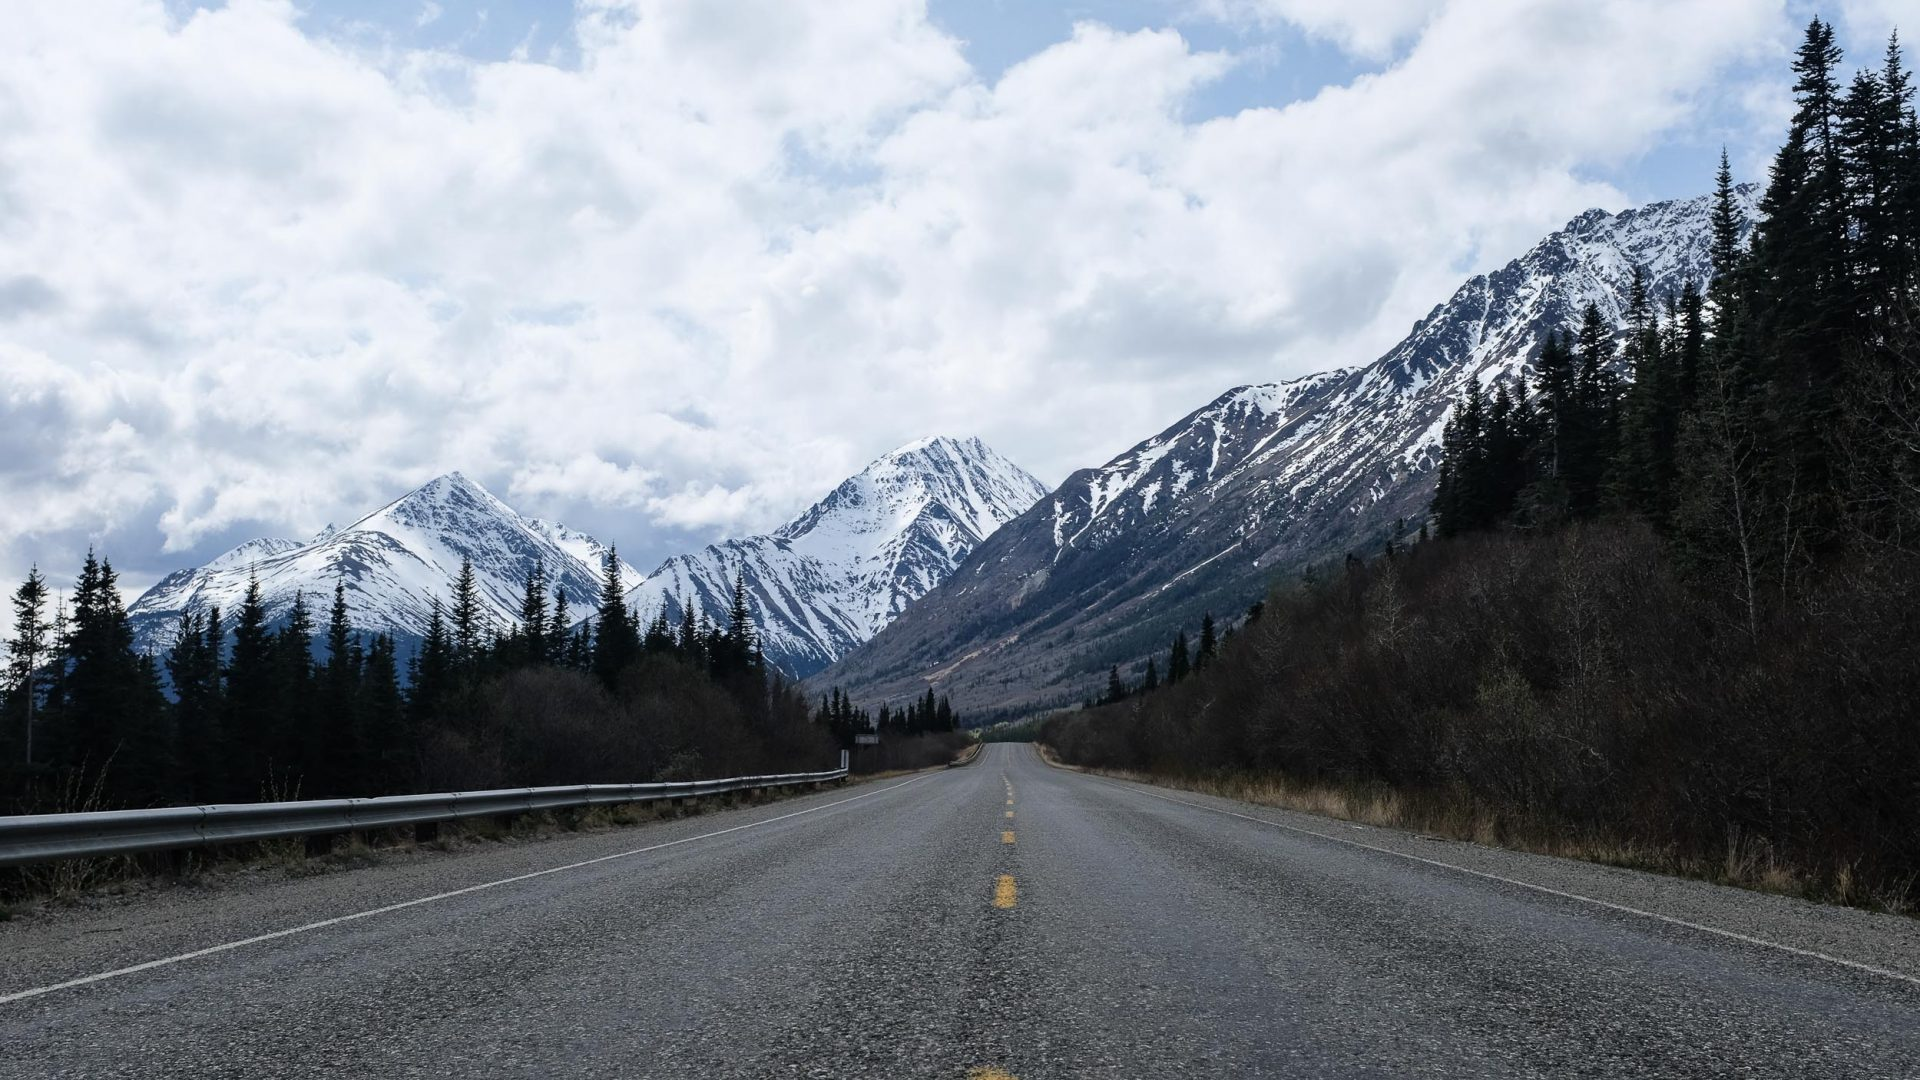 A road in the Yukon, Canada.